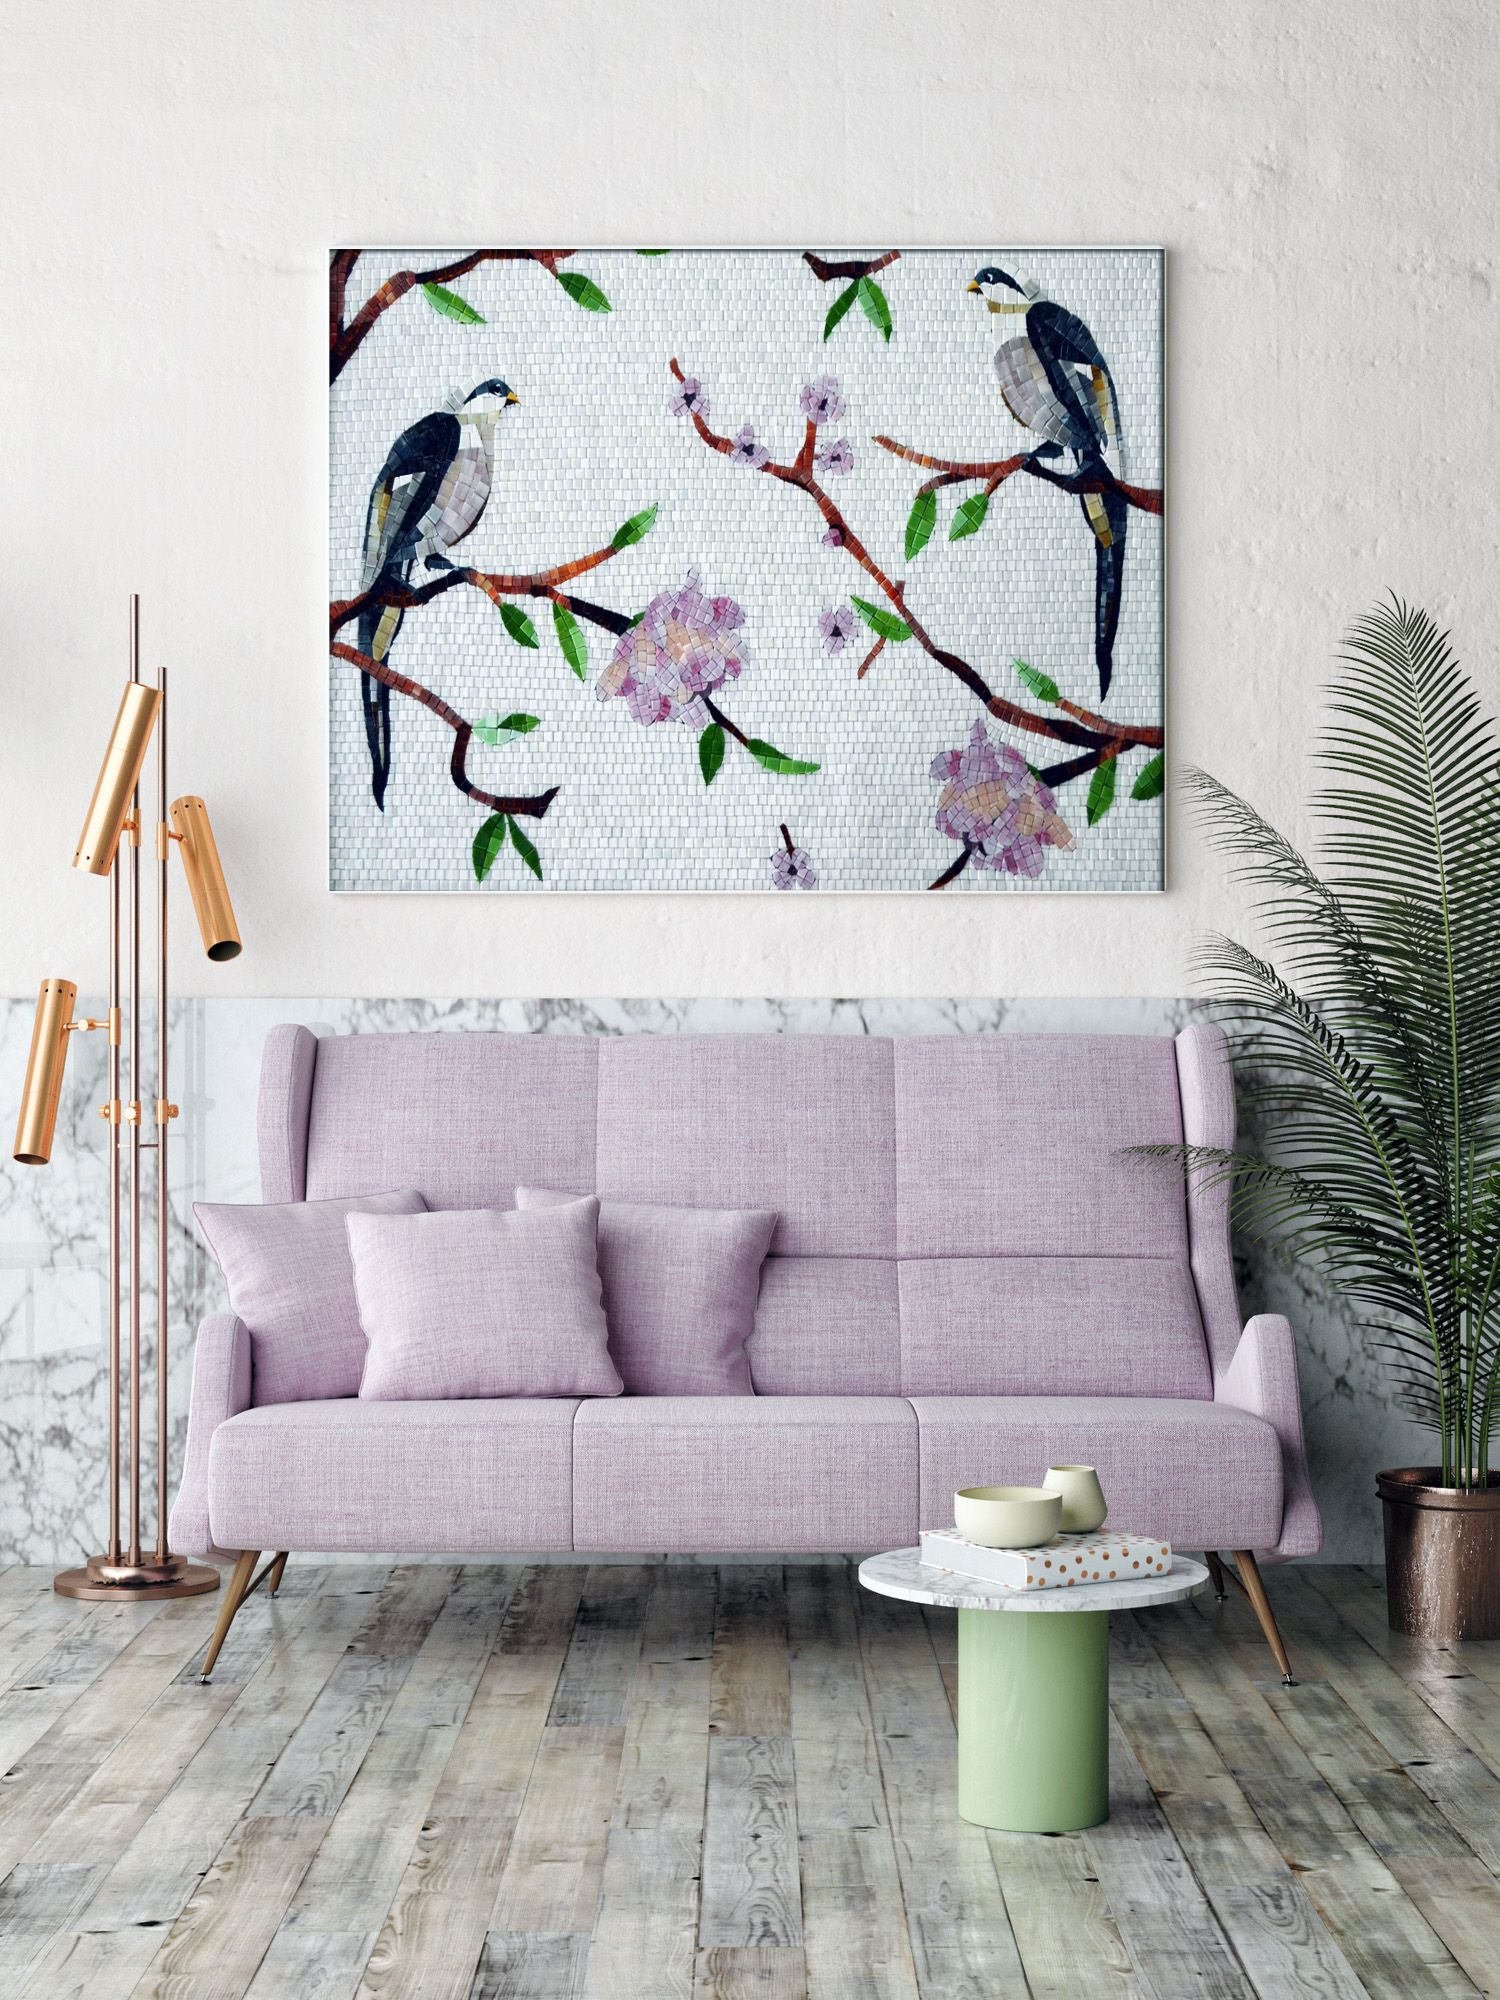 Unique Ways To Decorate Your Home With Mosaic Wall Art | to print ...